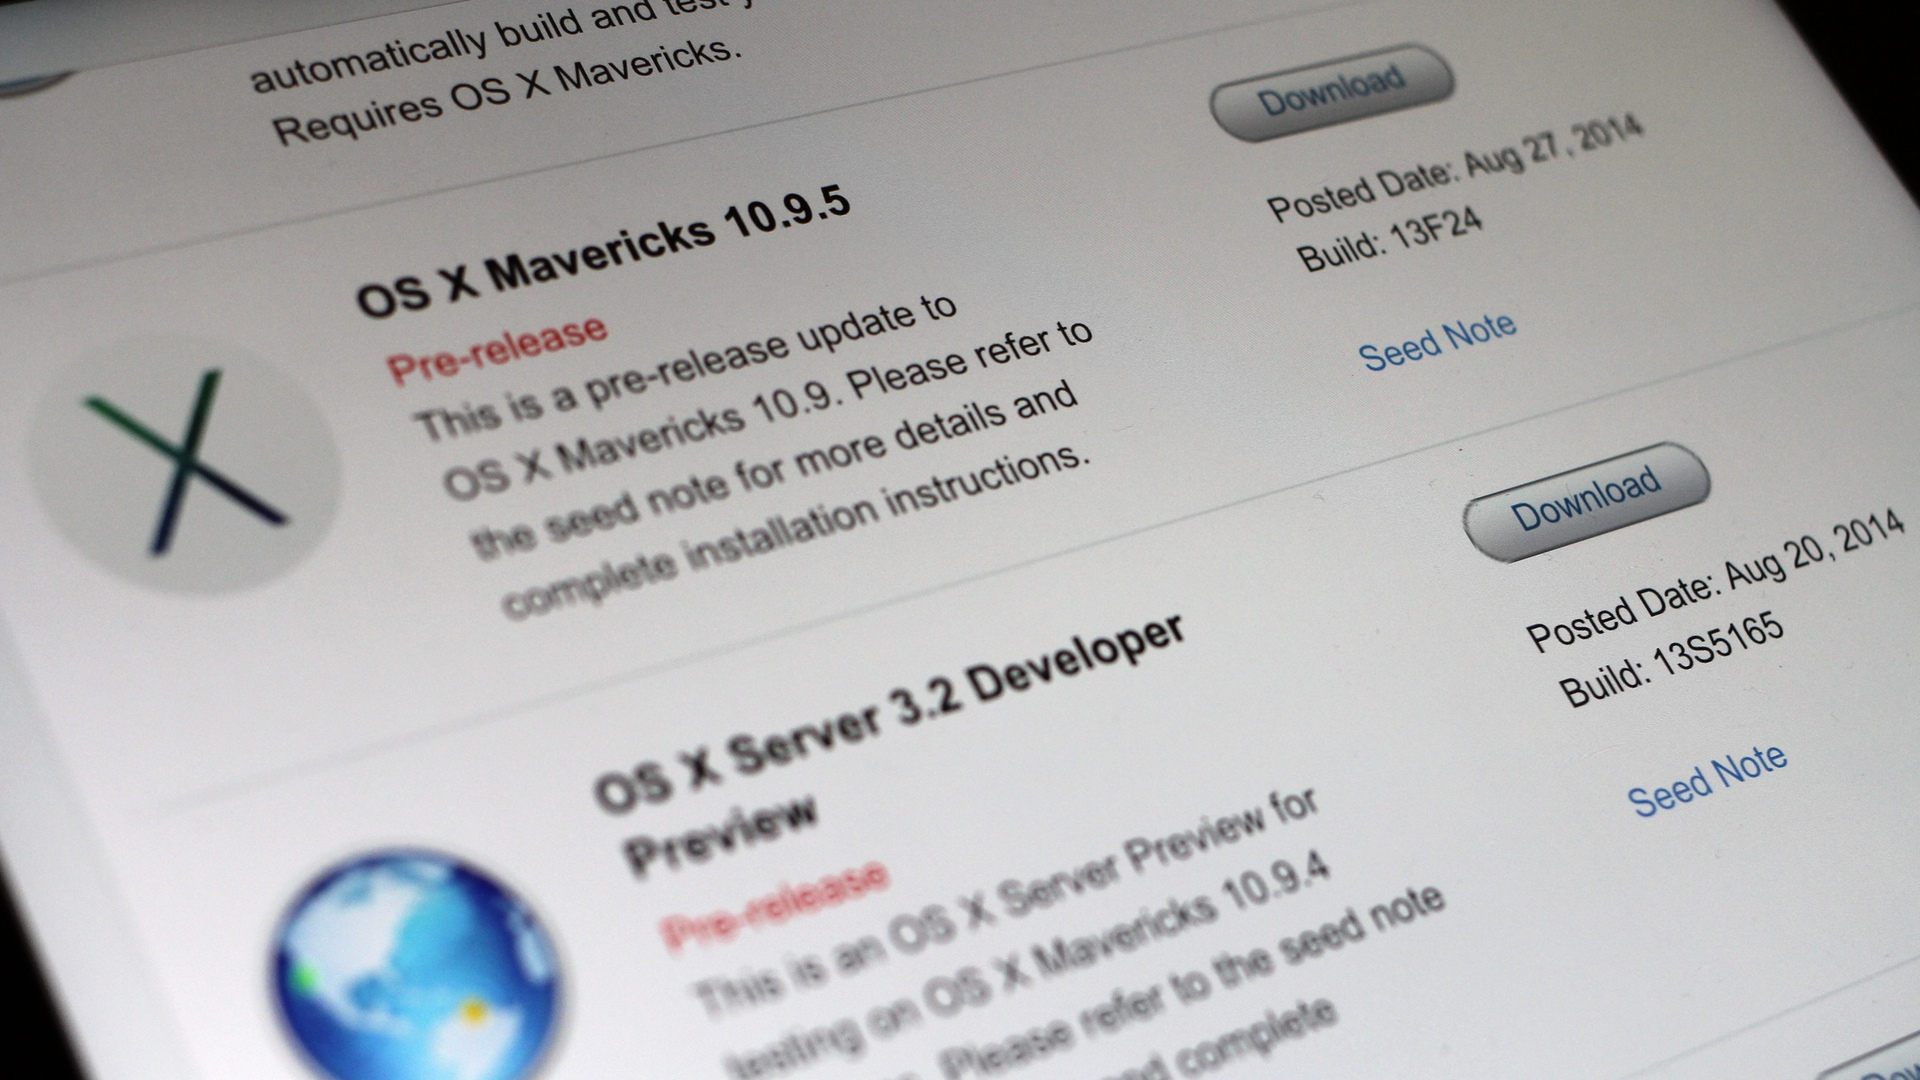 OS X Mavericks 10.9.5 build 13F24